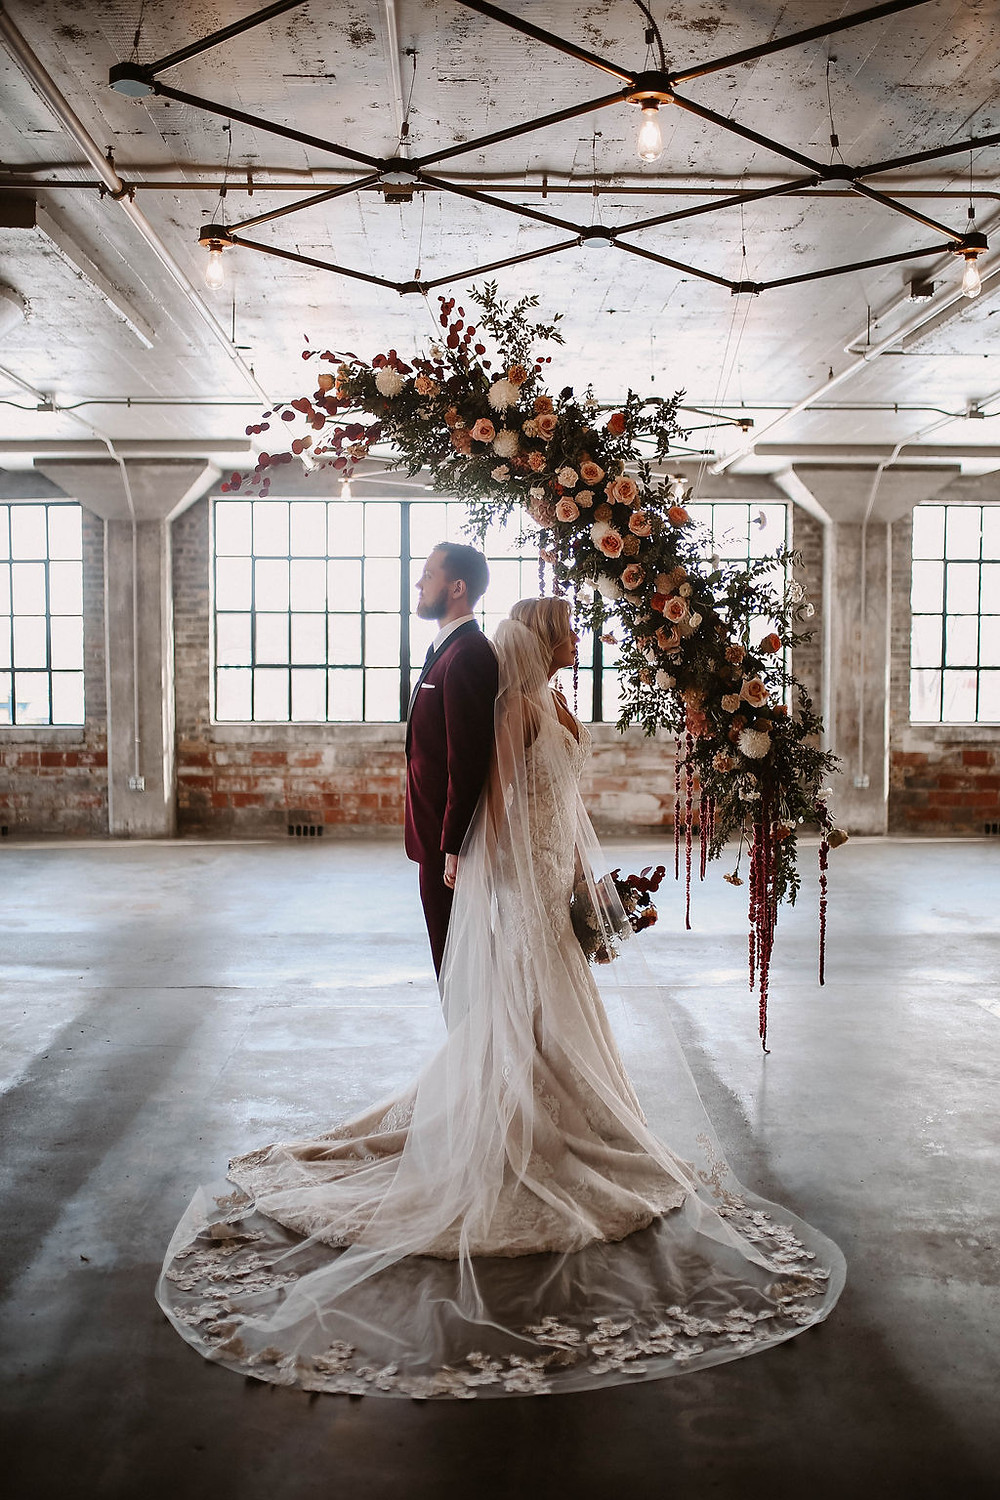 Studio Bloom Iowa hanging floral wedding ceremony installation in peach, burgundy, and white